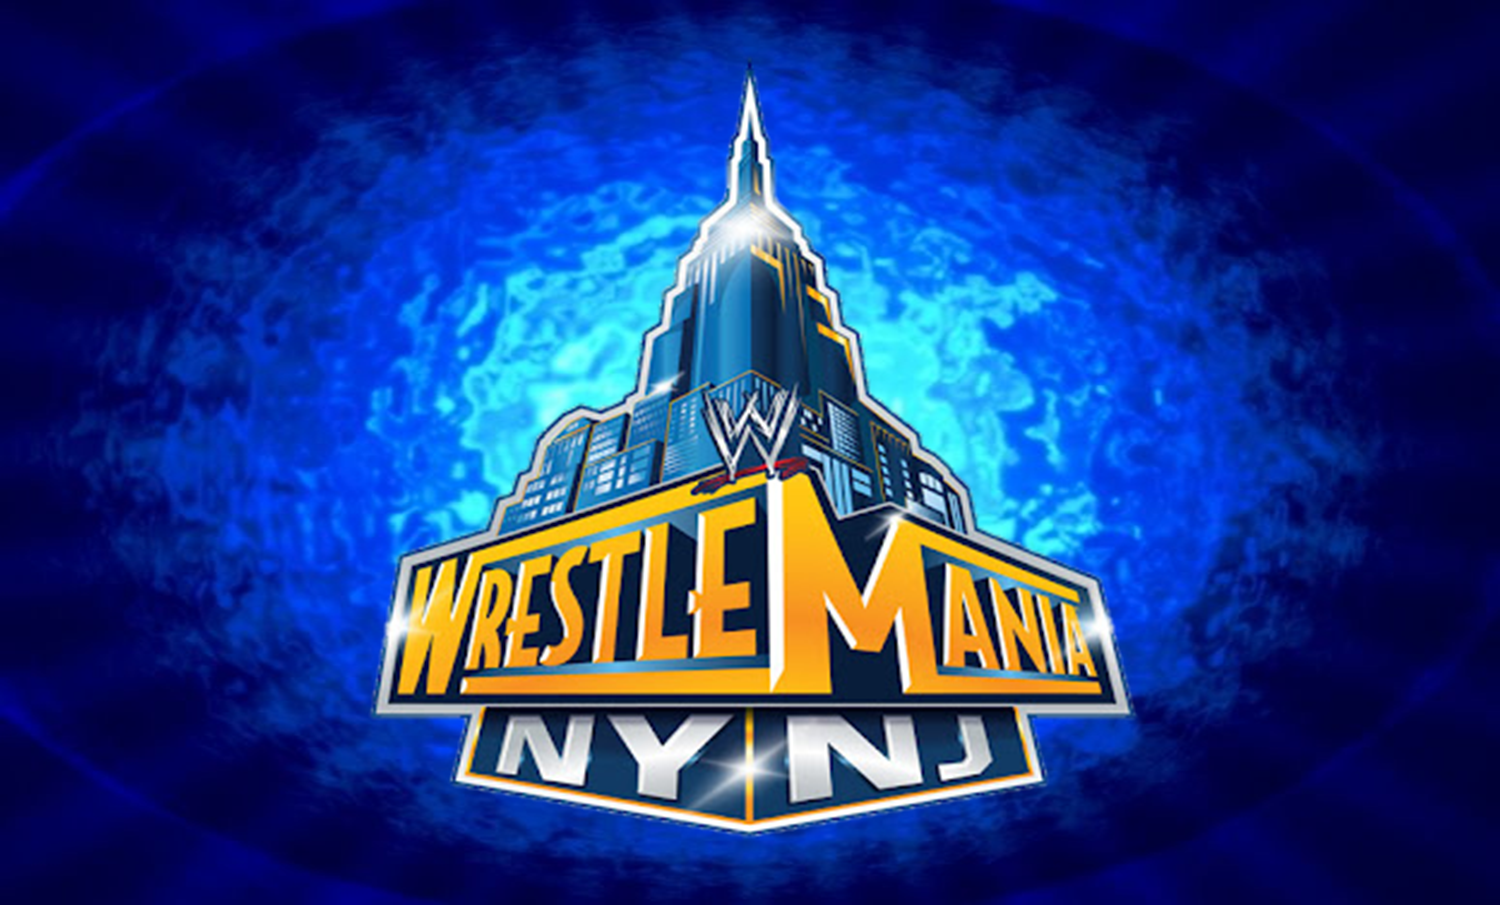 http://cwcasadowrestling.files.wordpress.com/2012/04/wrestlemania-29.png